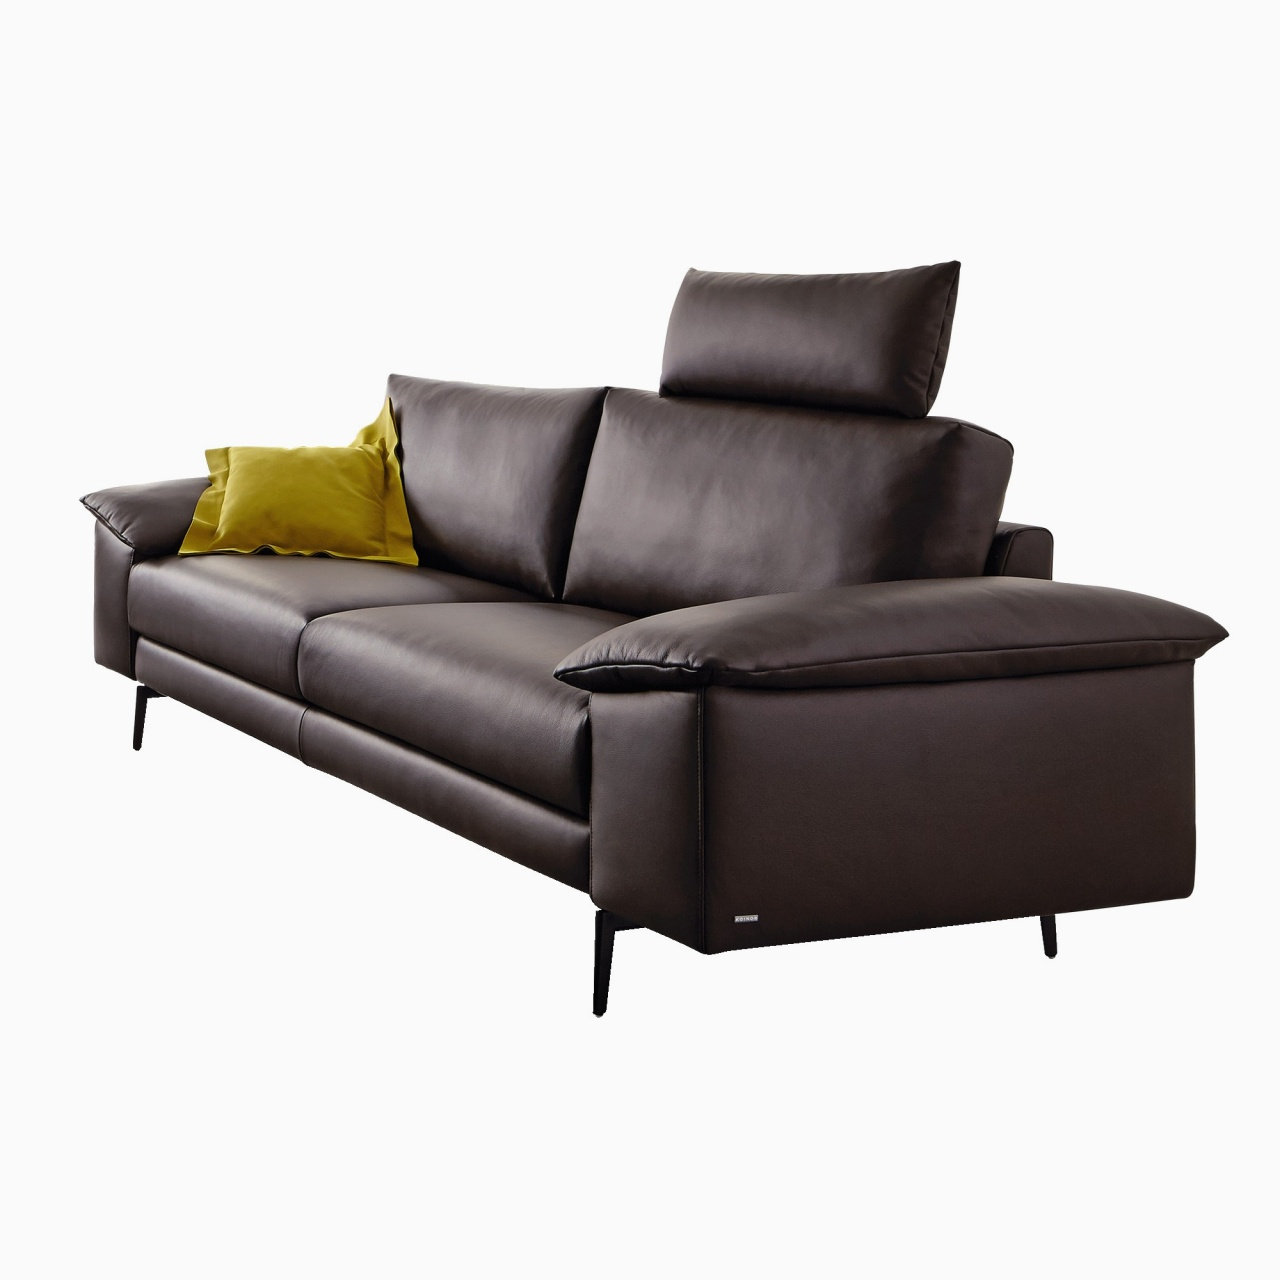 difference between sofa and loveseat wohnzimmer sofas ideen sie mussen sehen from difference between sofa and loveseat